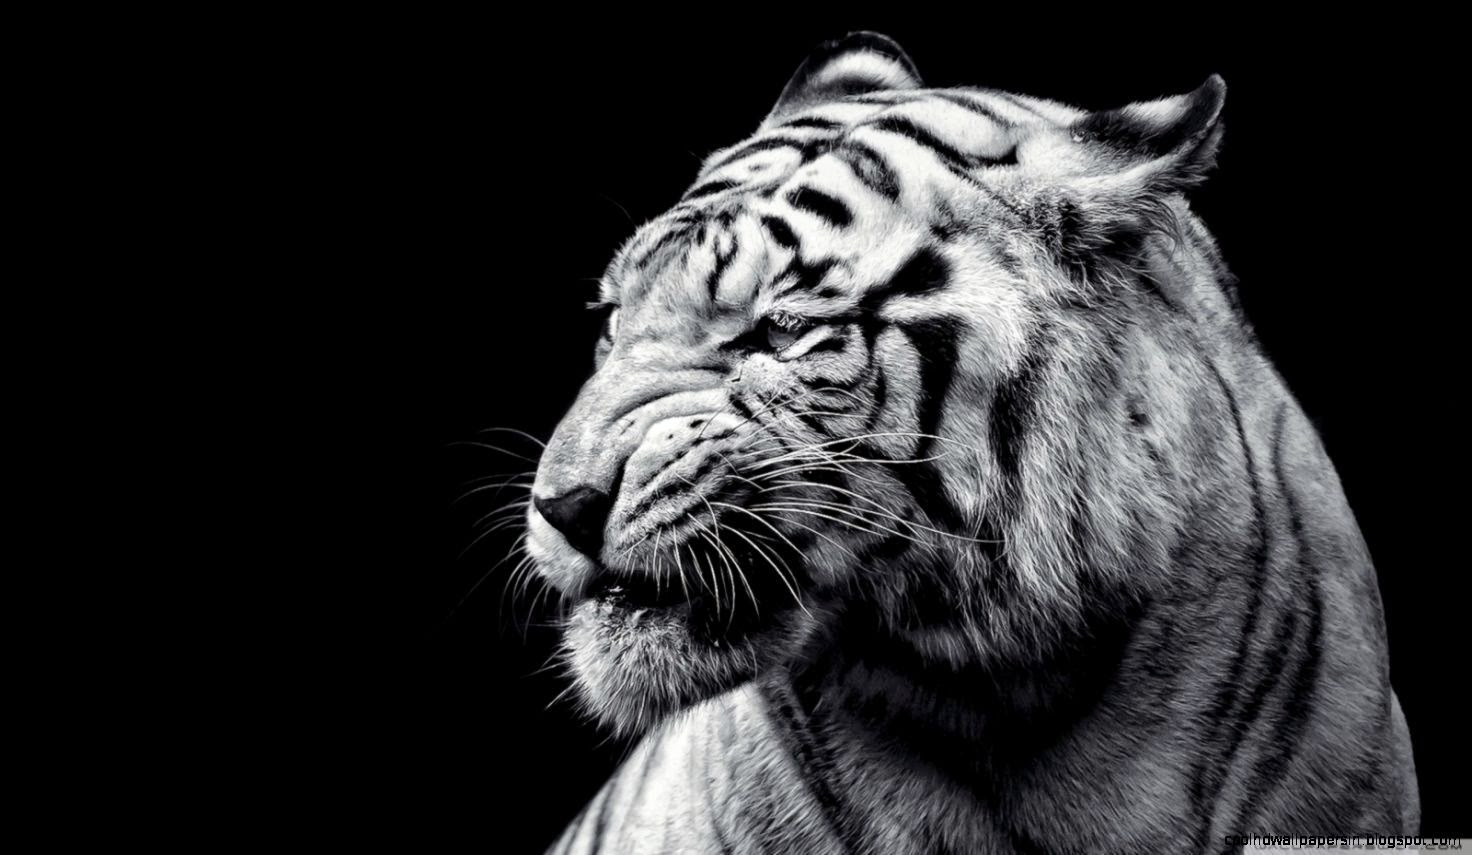 Simple Wallpaper High Resolution Tiger - tiger-black-and-white-hd-desktop-wallpaper-high-definition  Photograph_475858.jpg